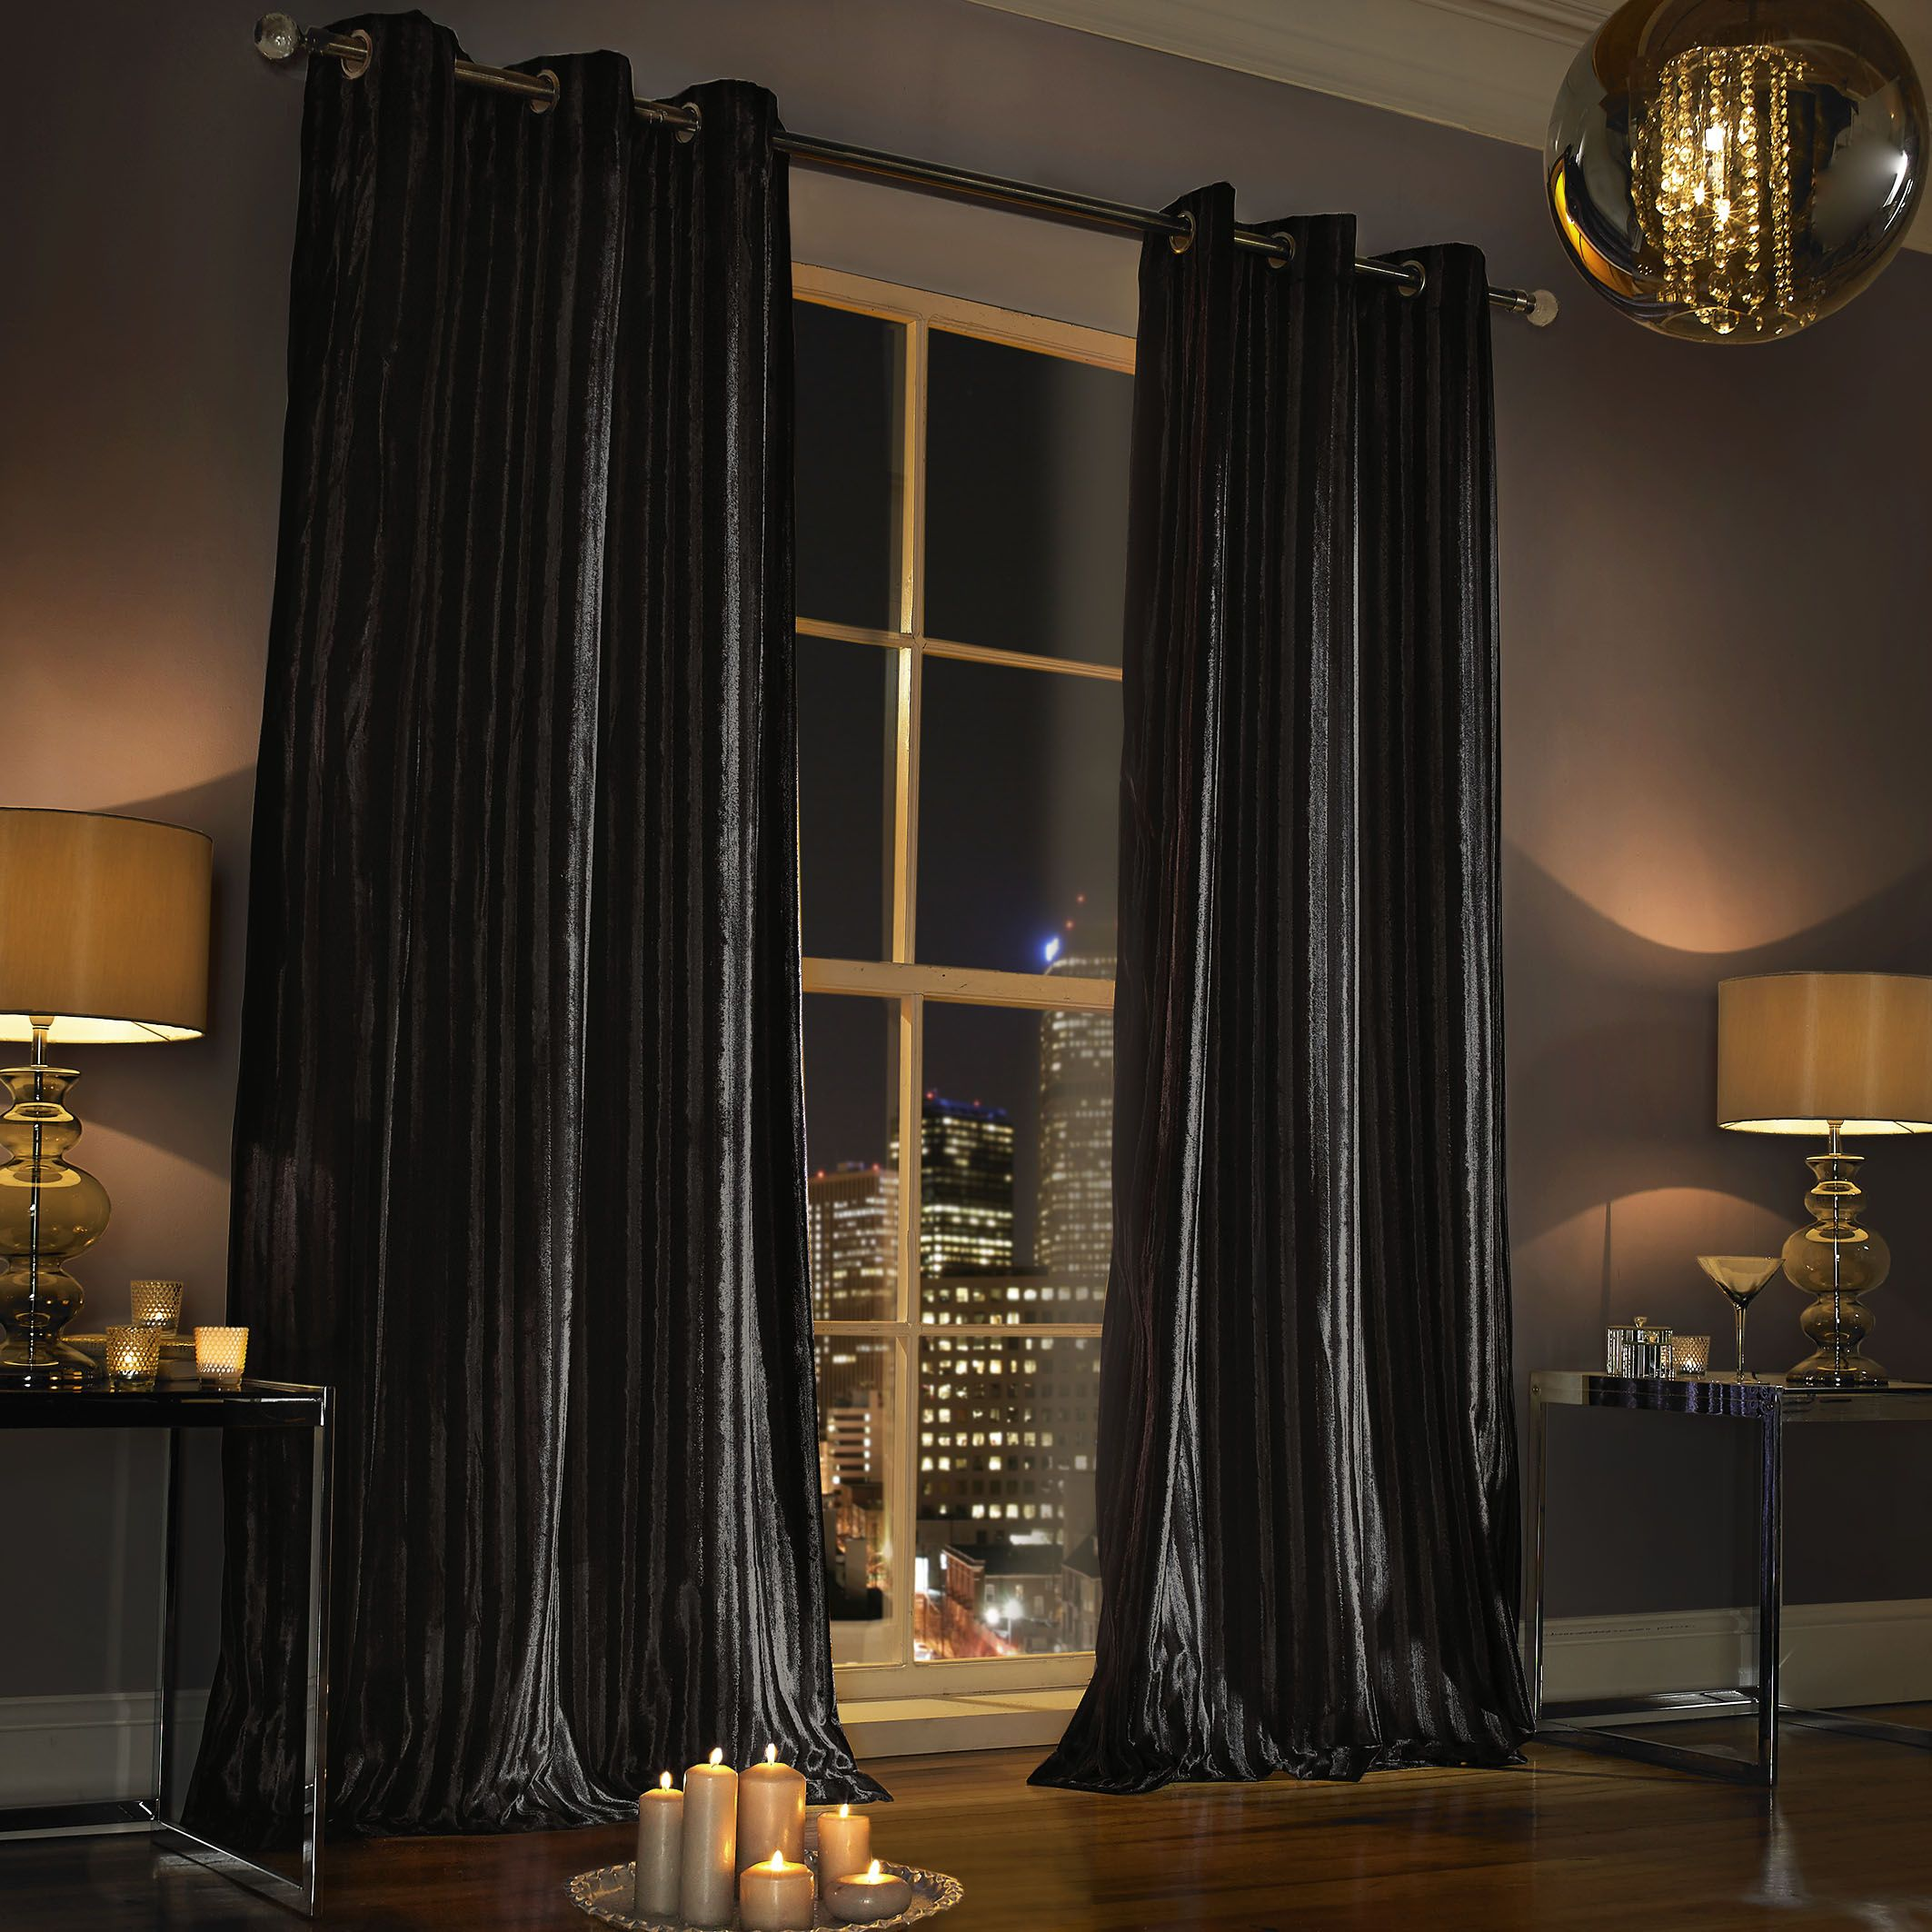 windows bedroom curtains with gallery unnamed blinds in good drapes for black file decorating to go brown